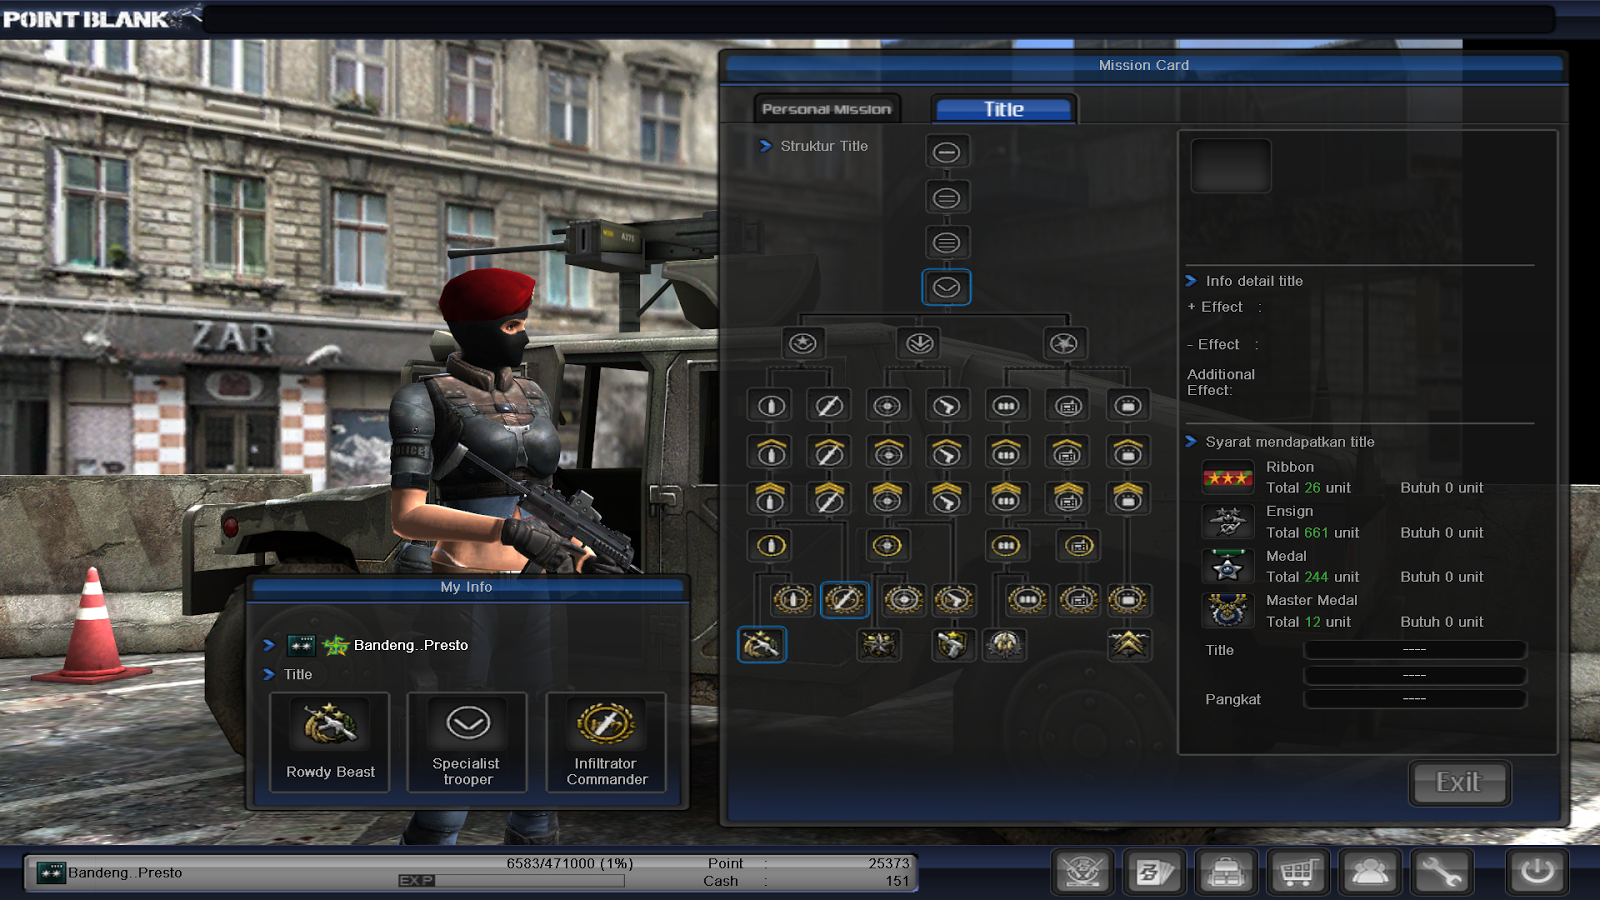 MP7 title pointblank